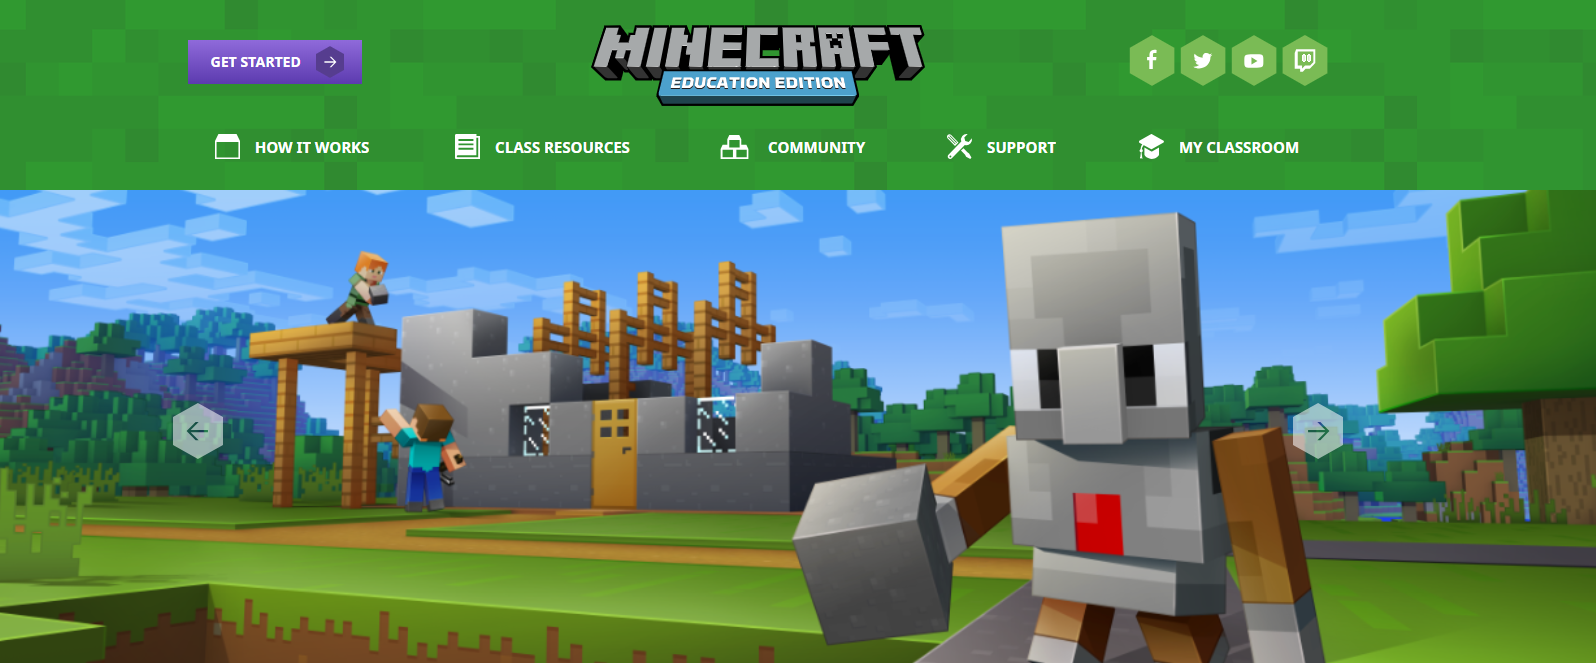 Minecraft - Education Edition has lots of lesson ideas, courses and support to help you get started using MInecraft with your class.